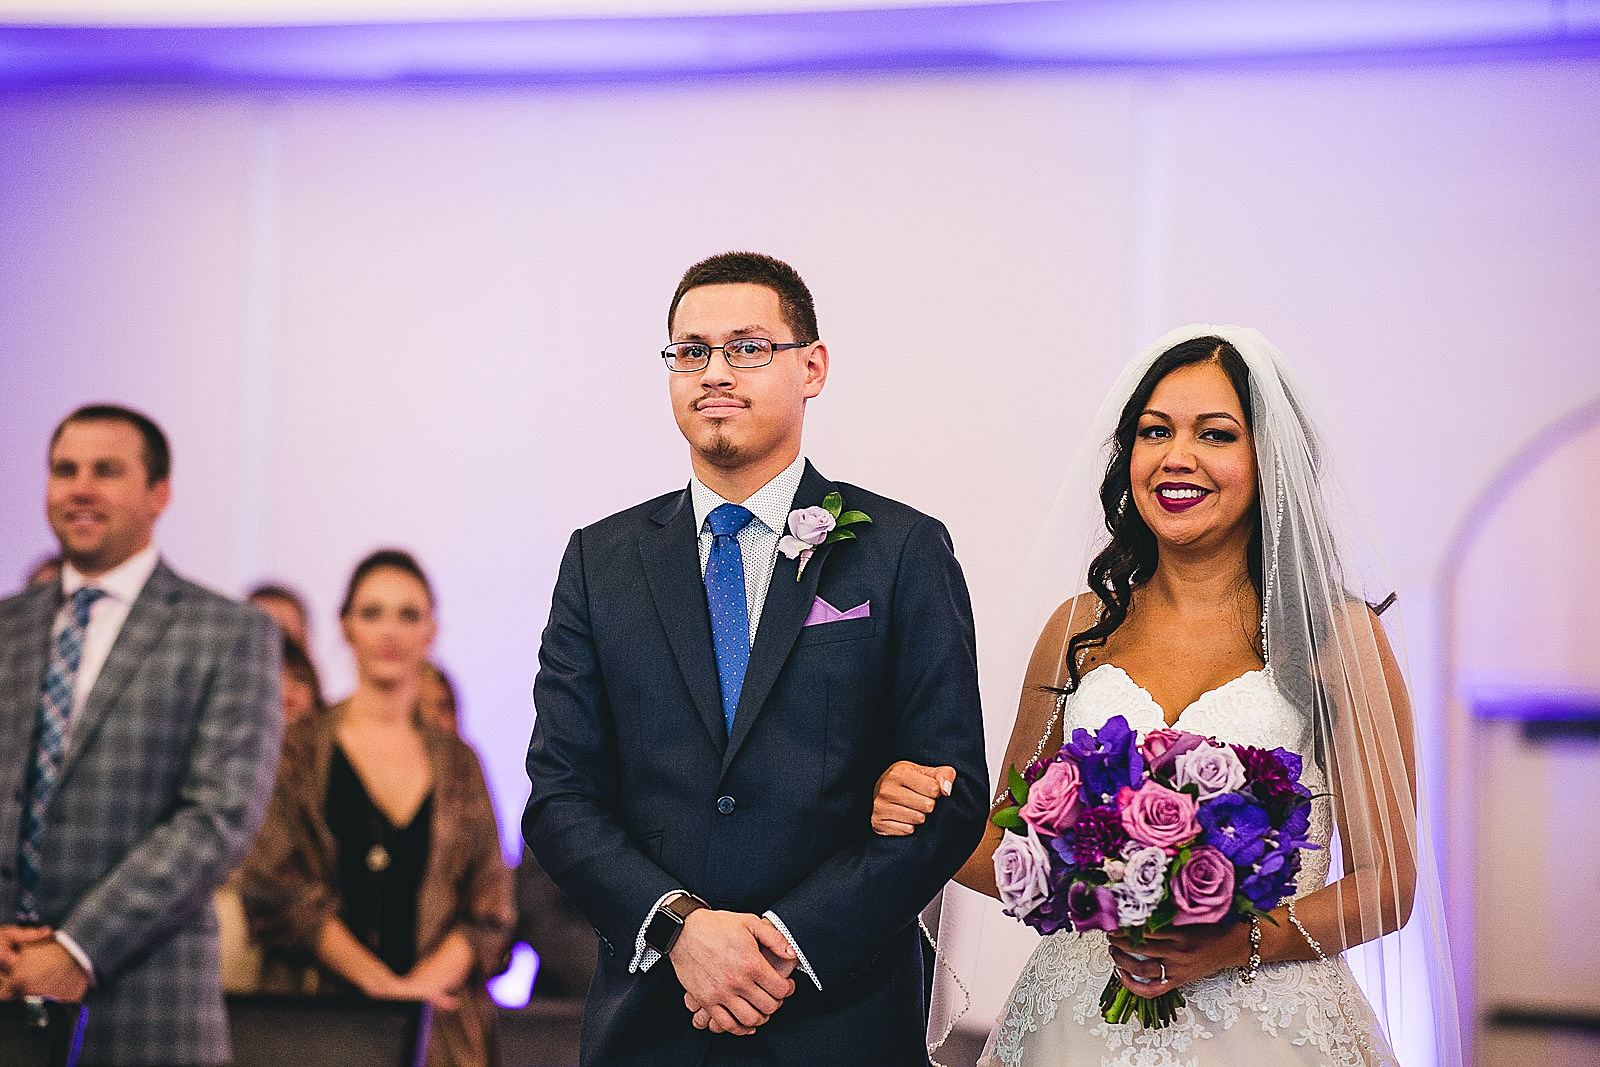 36 wedding at london house hotel - LondonHouse Wedding Photos // Mari + Kevin